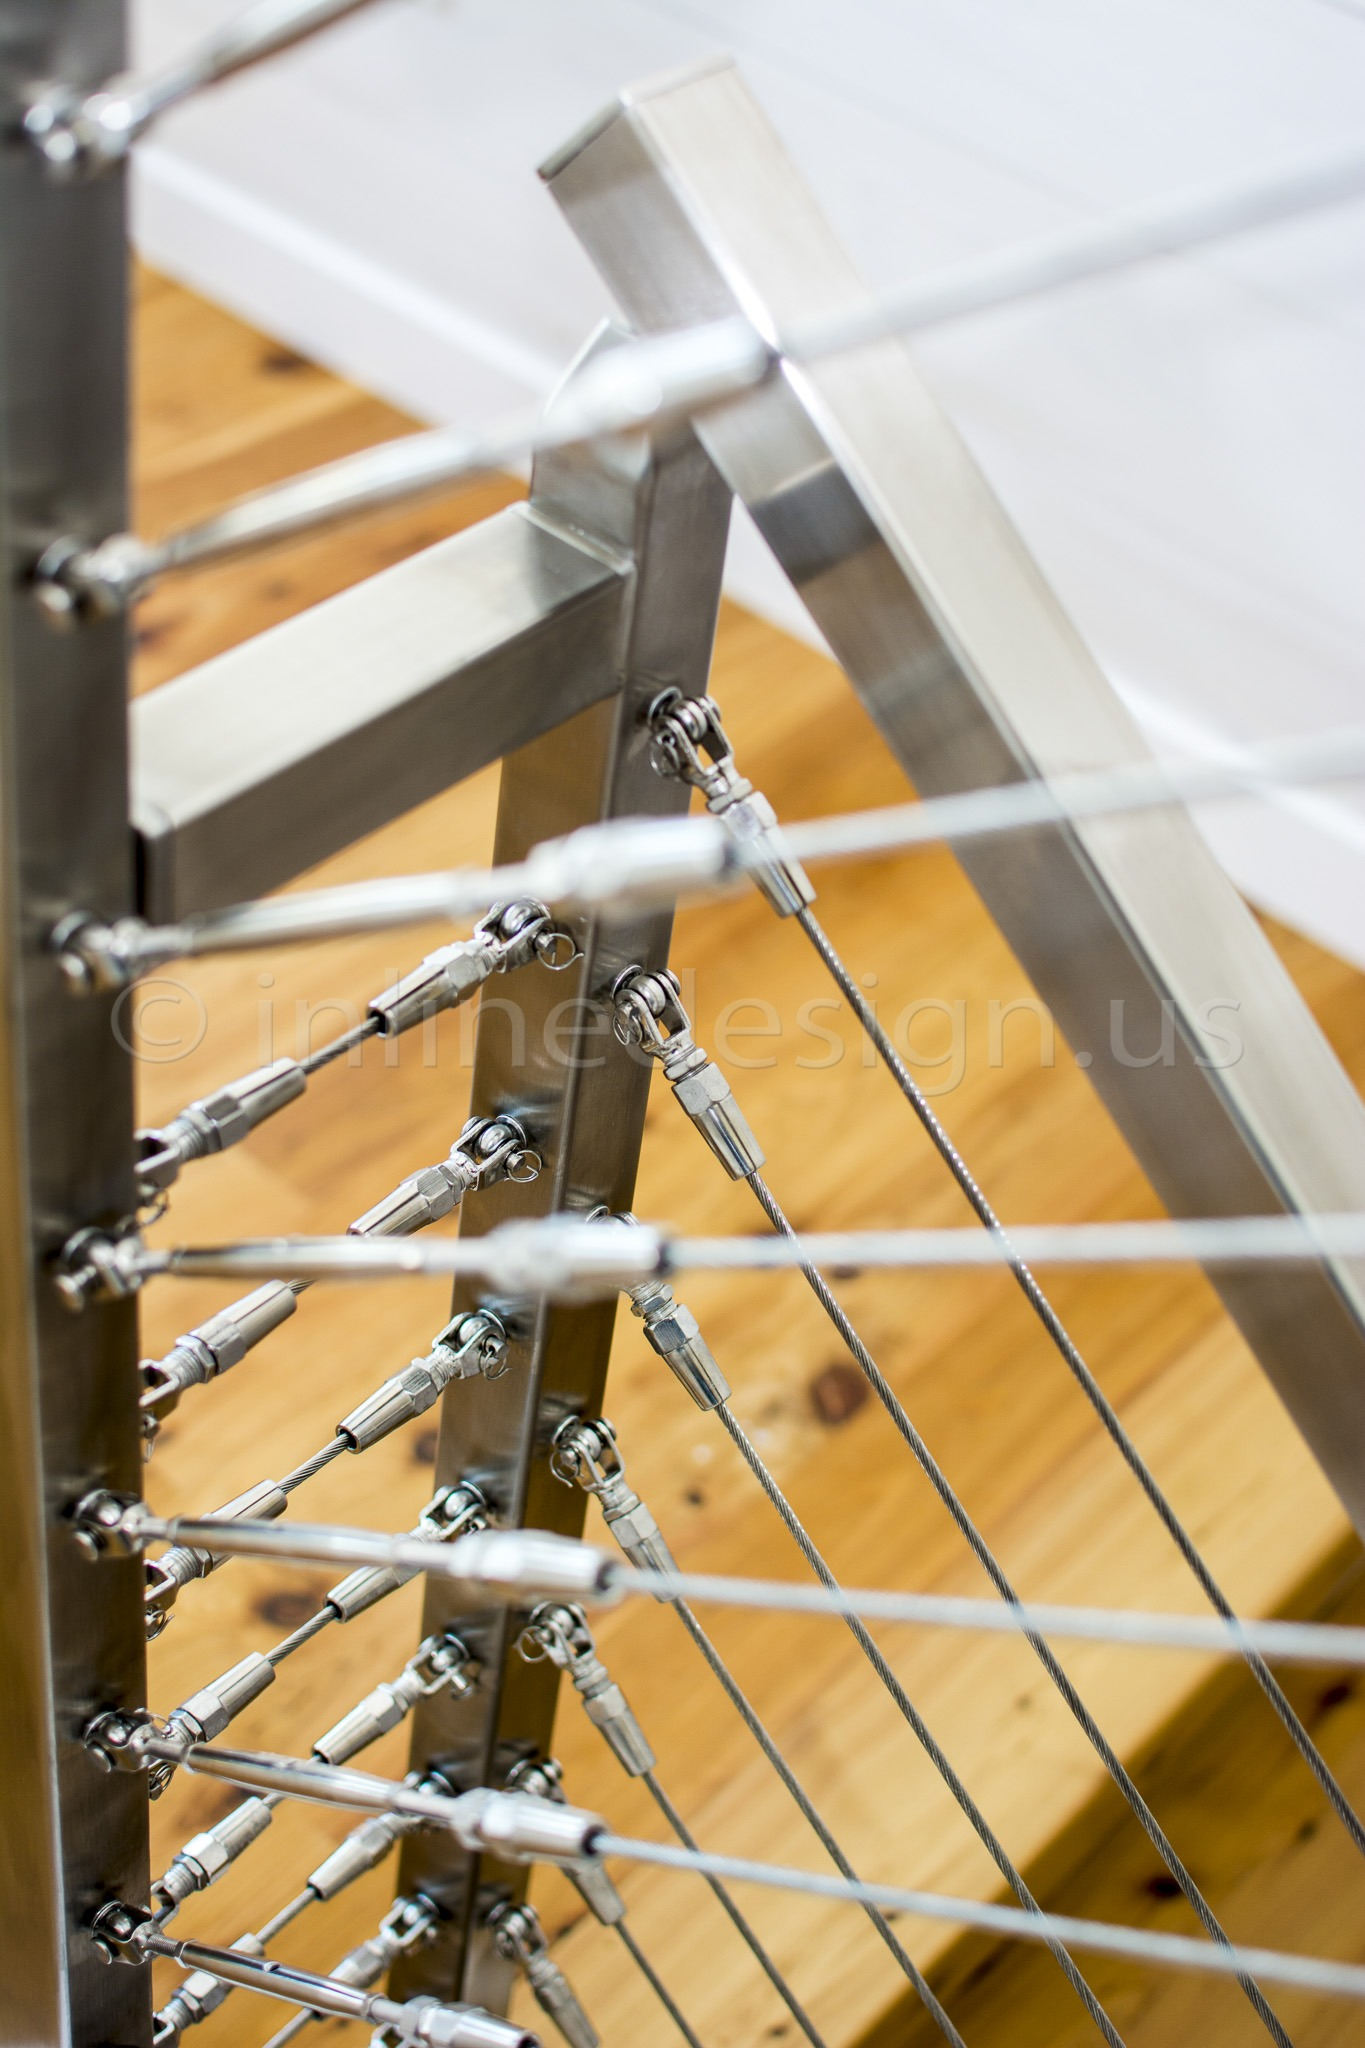 In Line Design : Eric nj modern stainless steel cable and glass railing